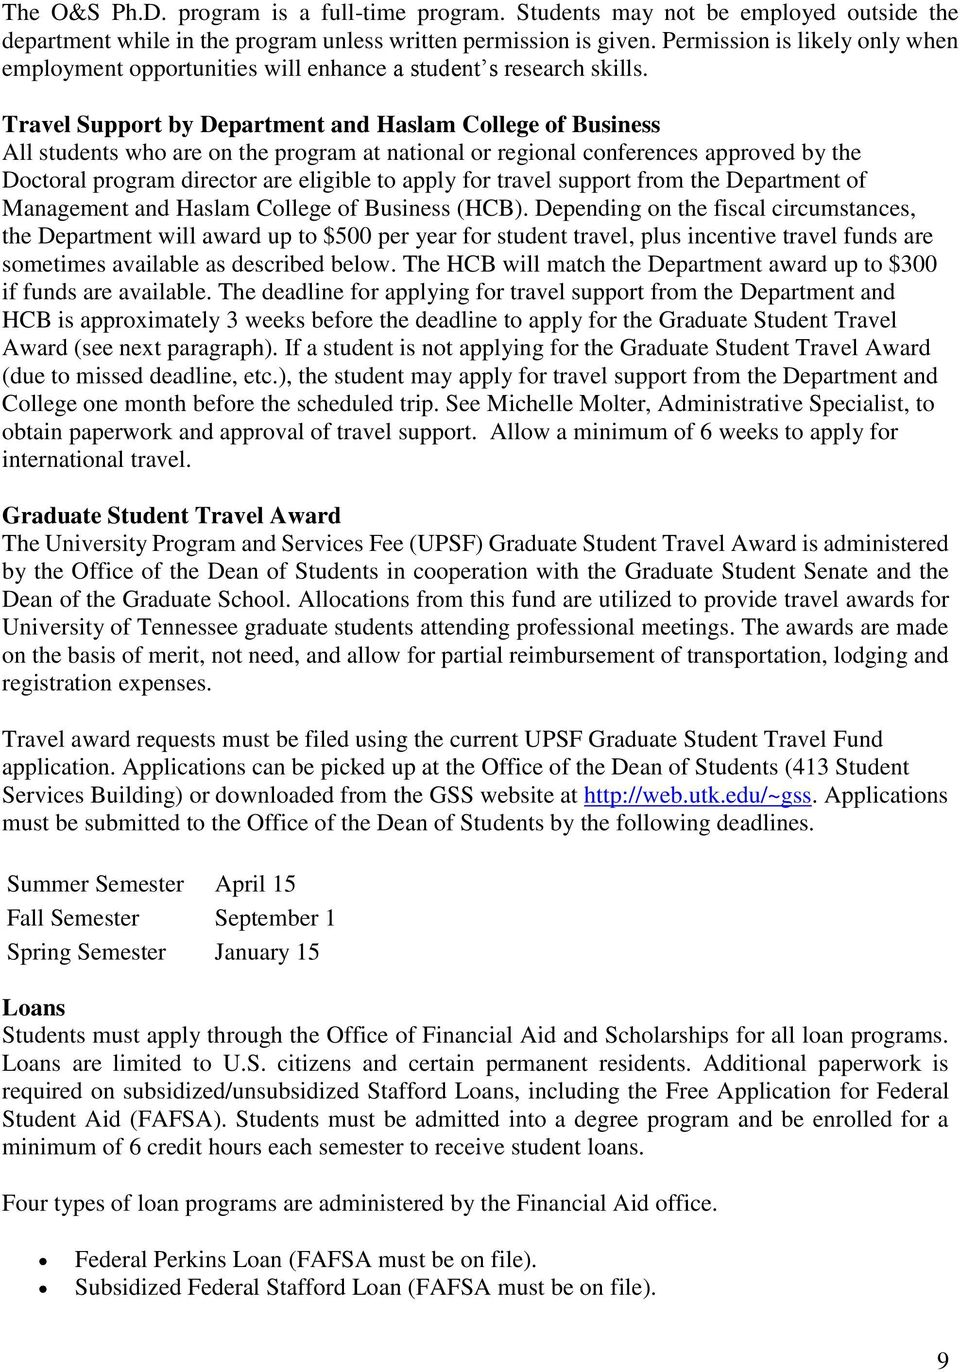 Travel Support by Department and Haslam College of Business All students who are on the program at national or regional conferences approved by the Doctoral program director are eligible to apply for